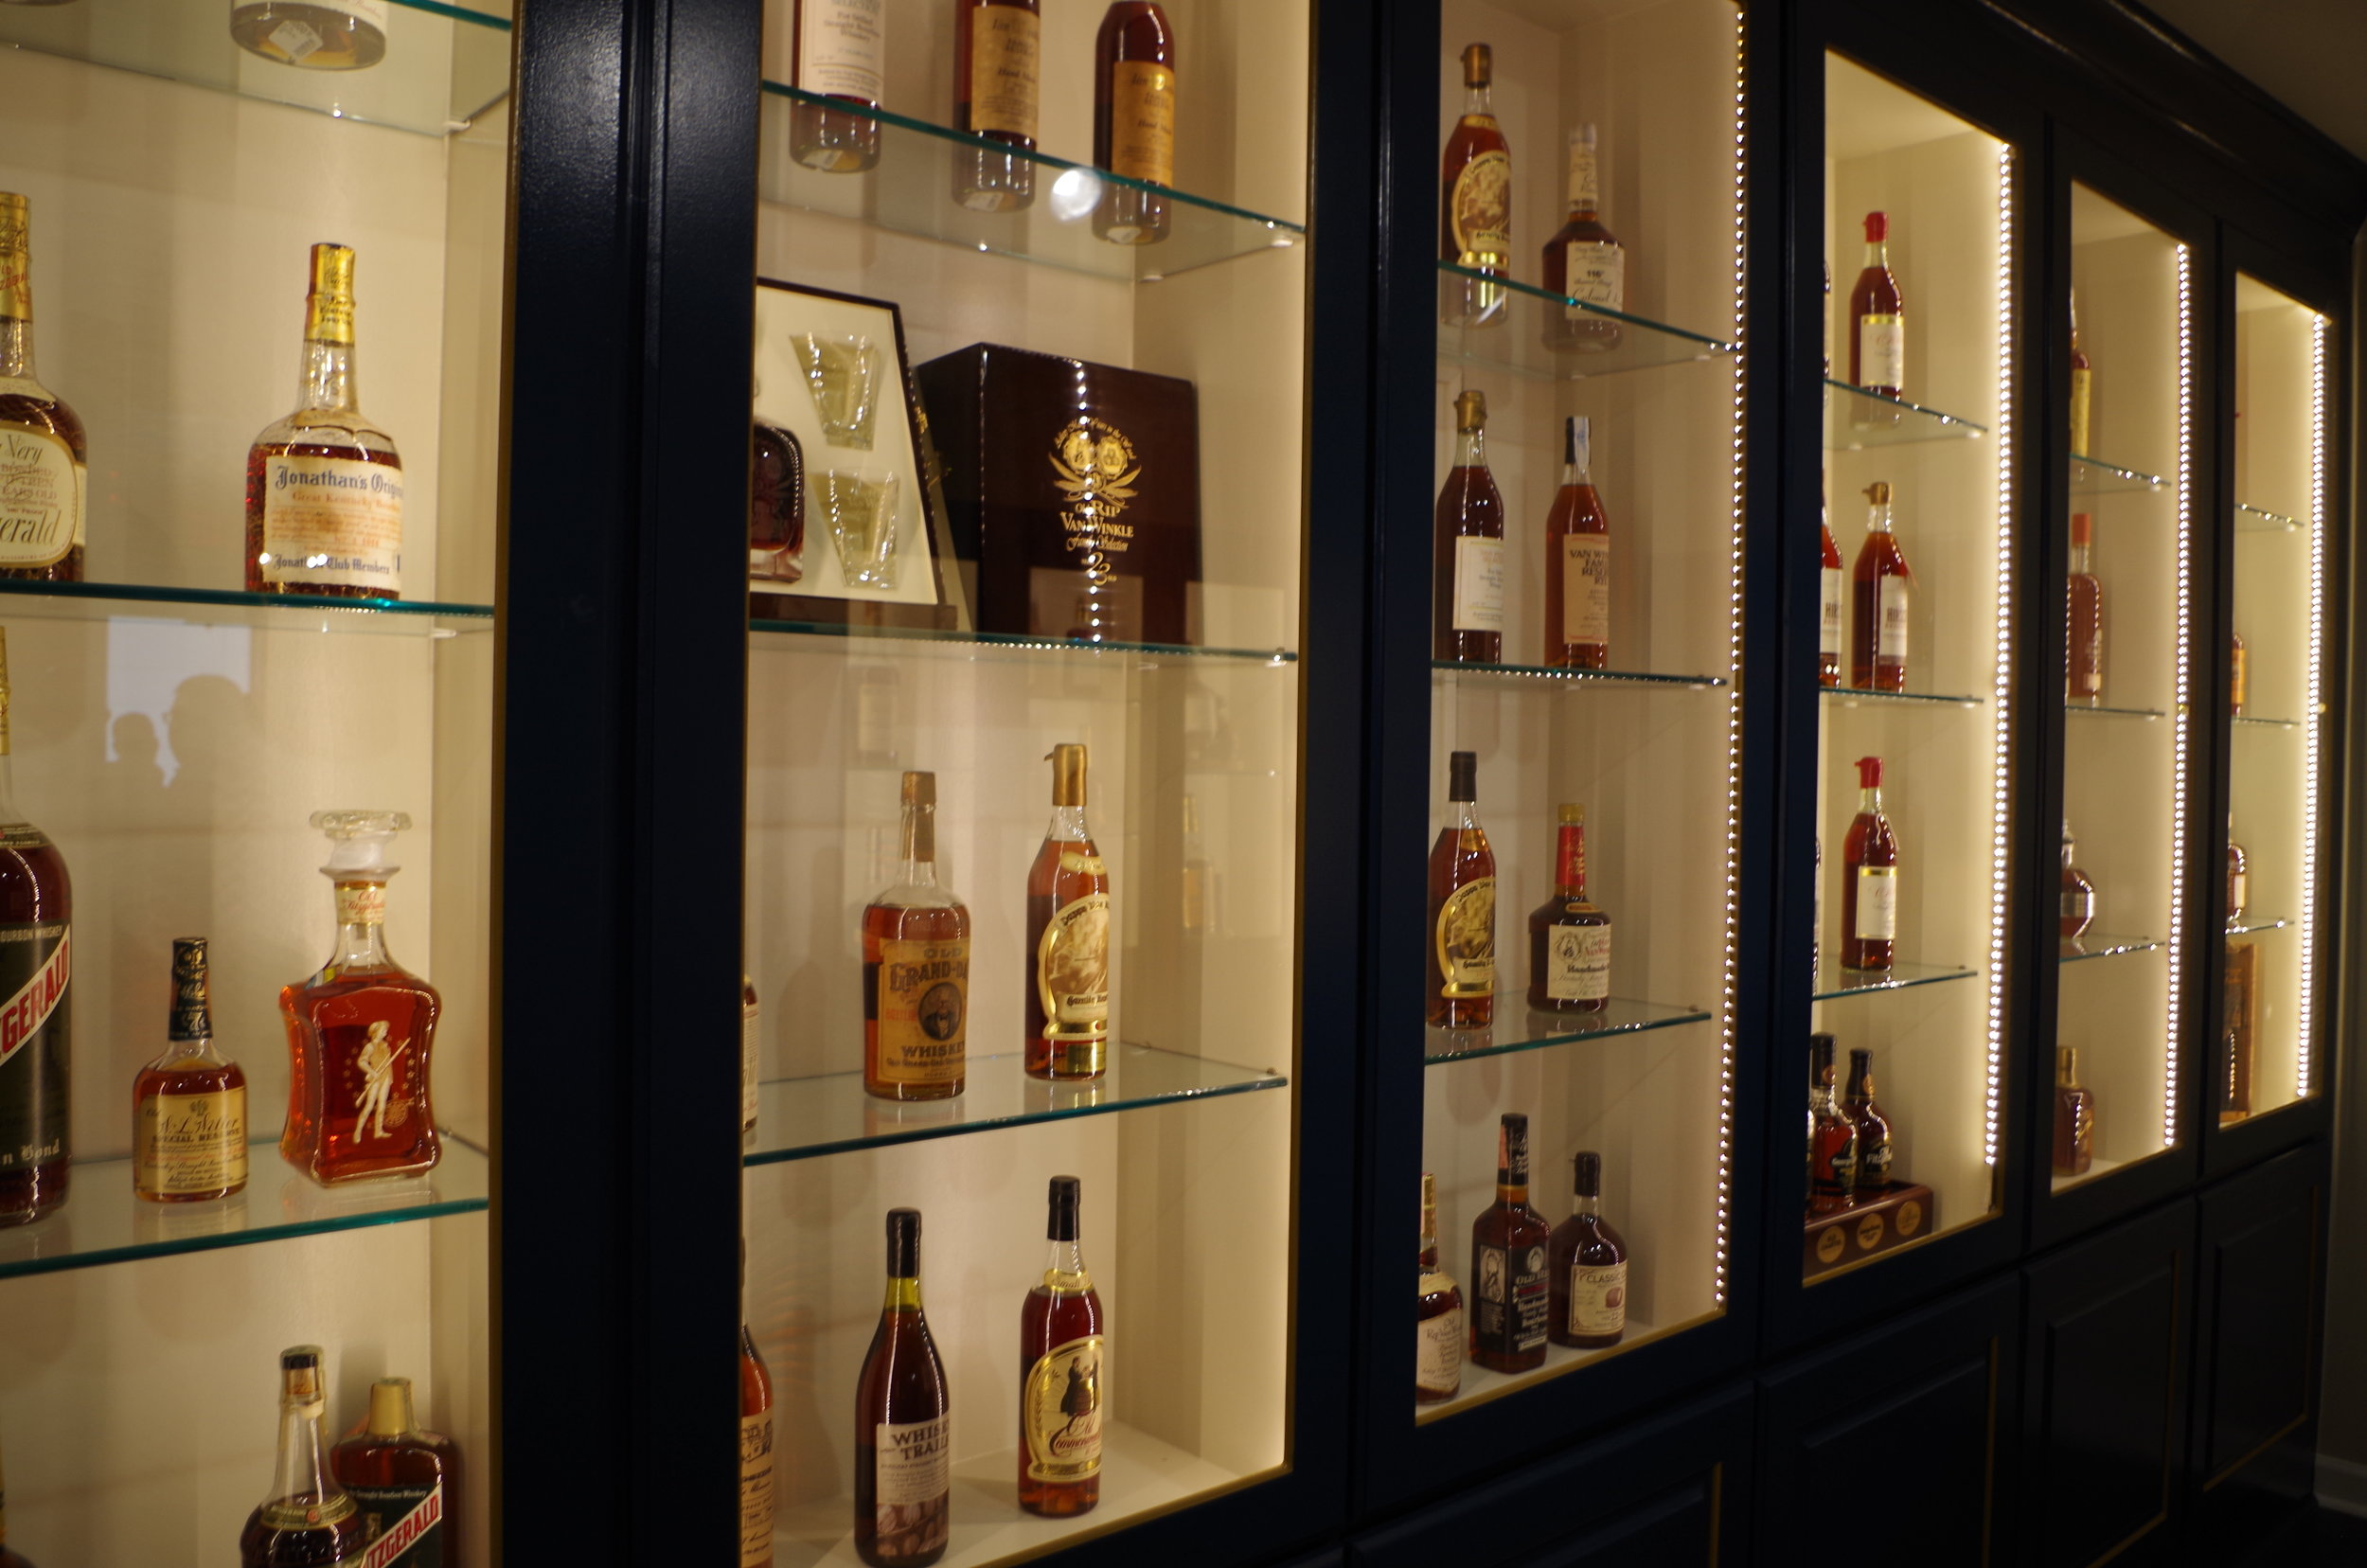 Justins House of Bourbon